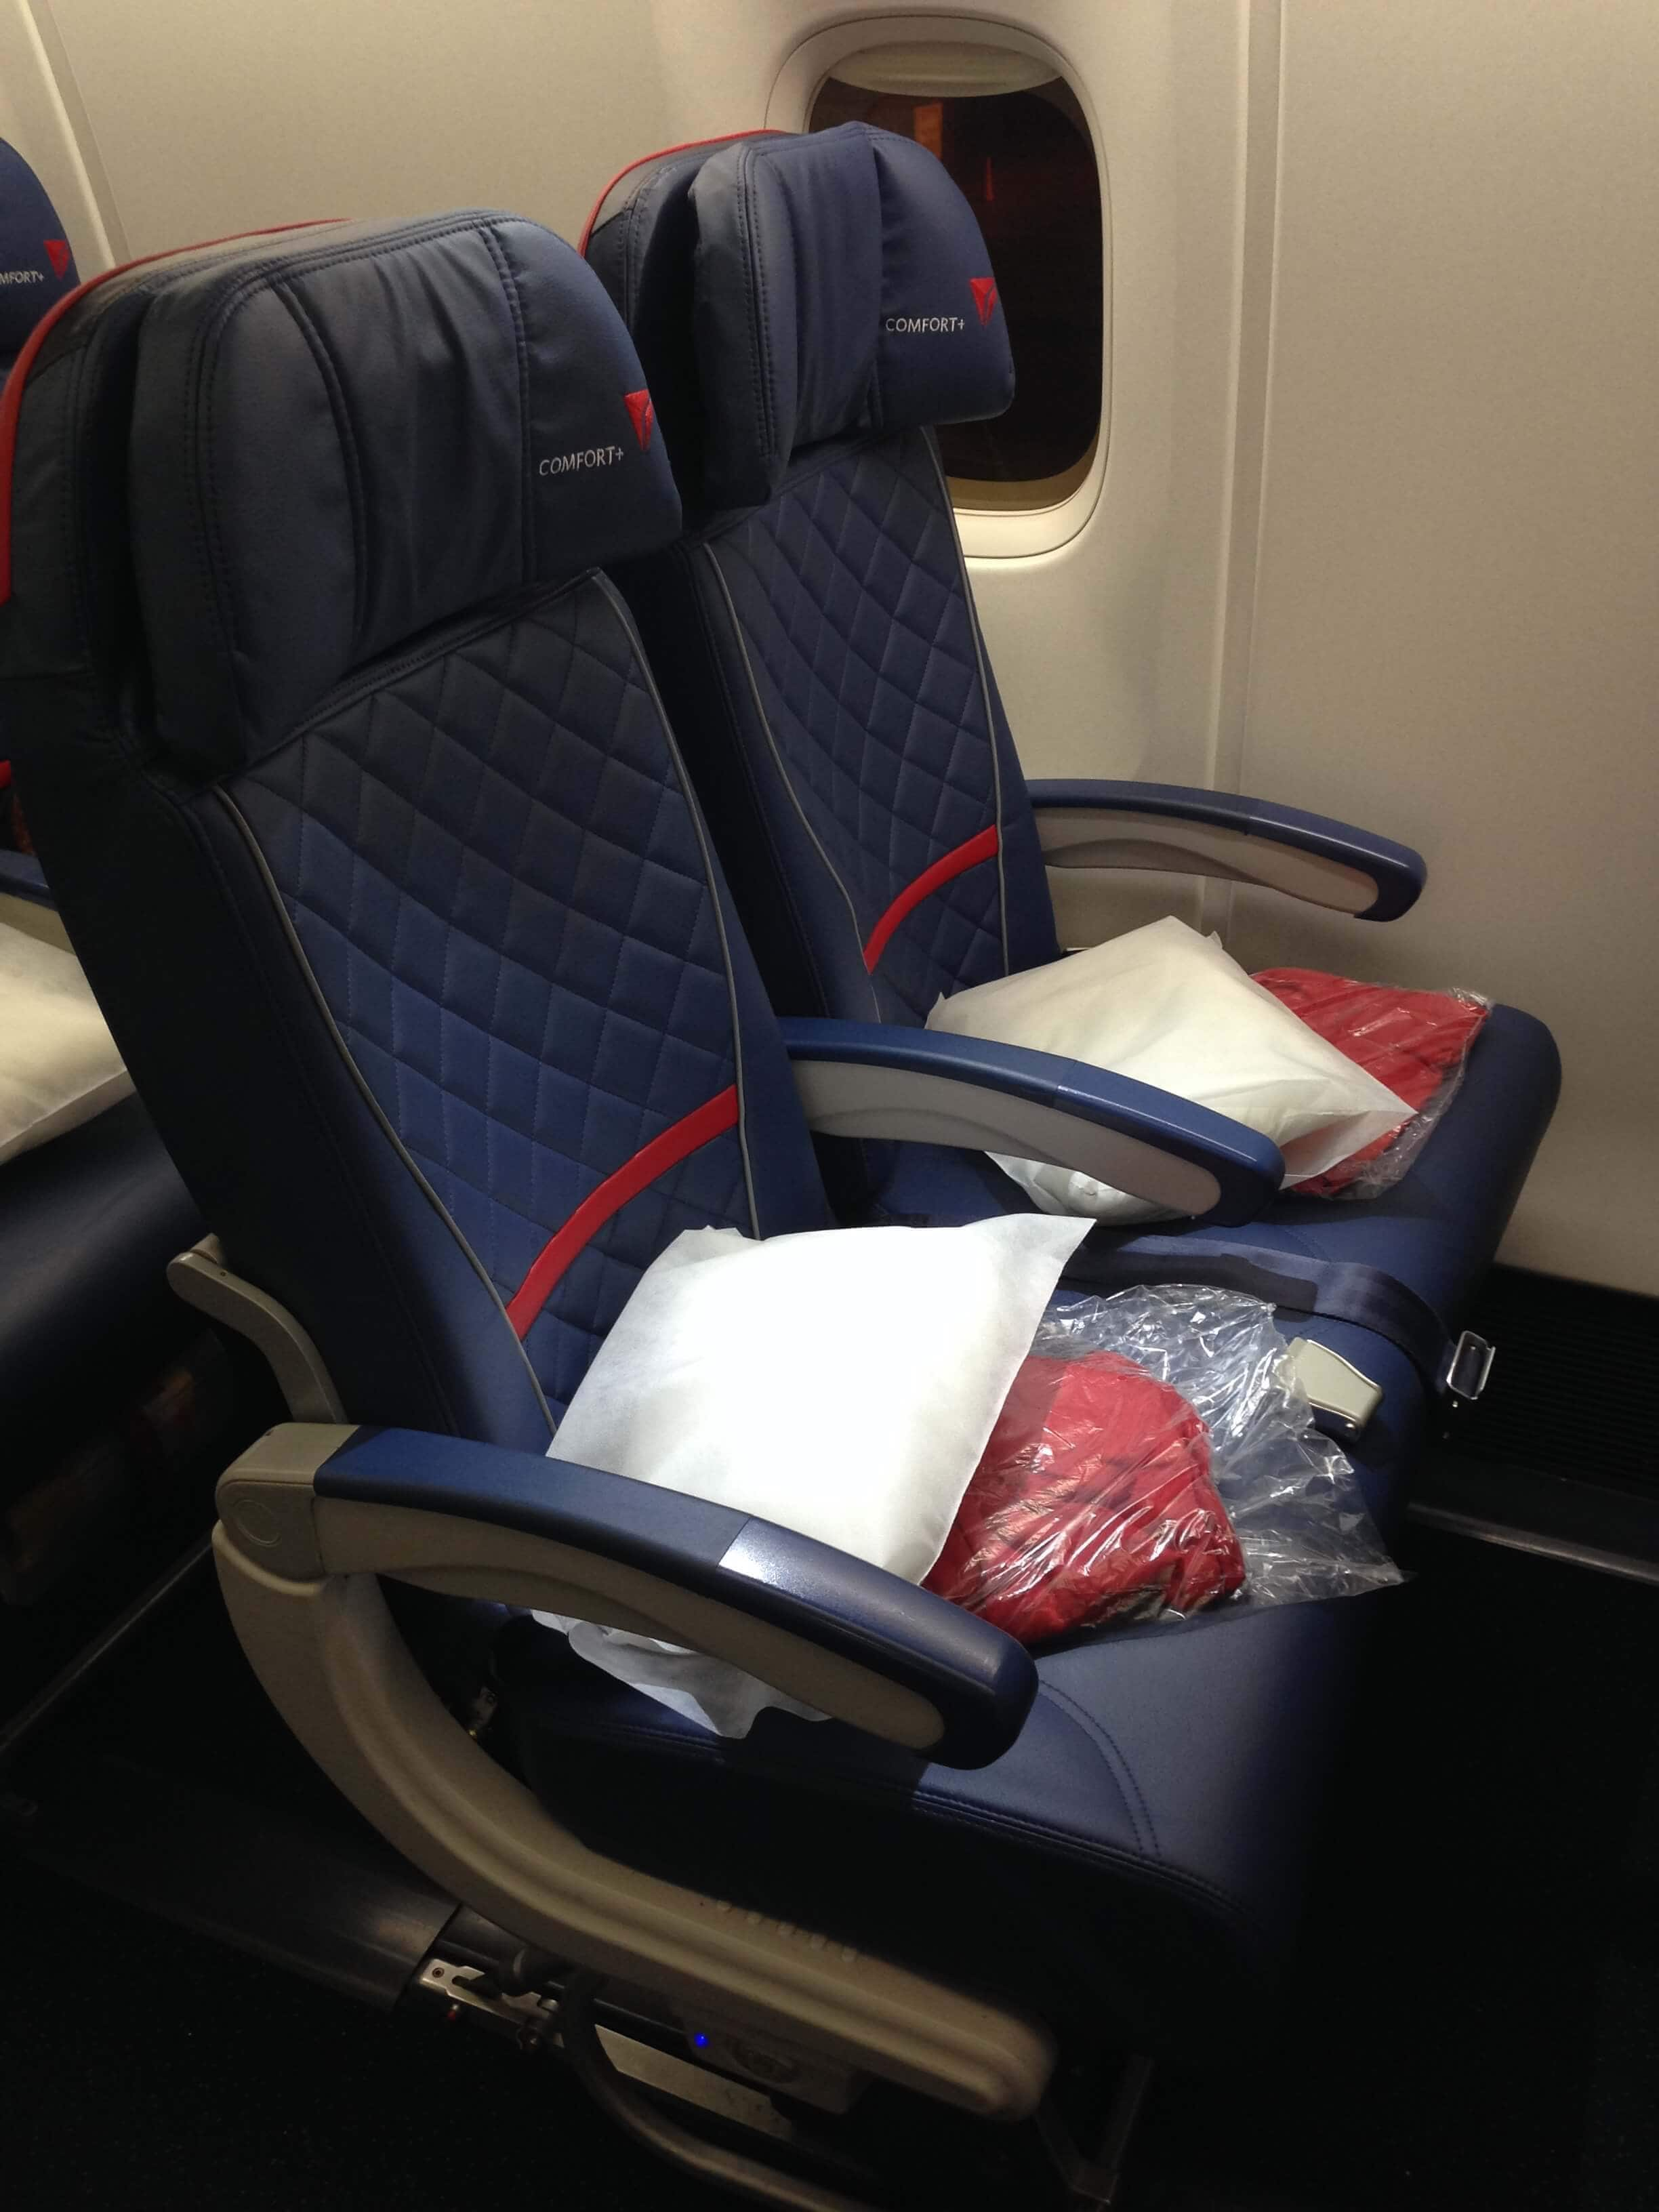 Delta Comfort Plus Review - The Travel Bite